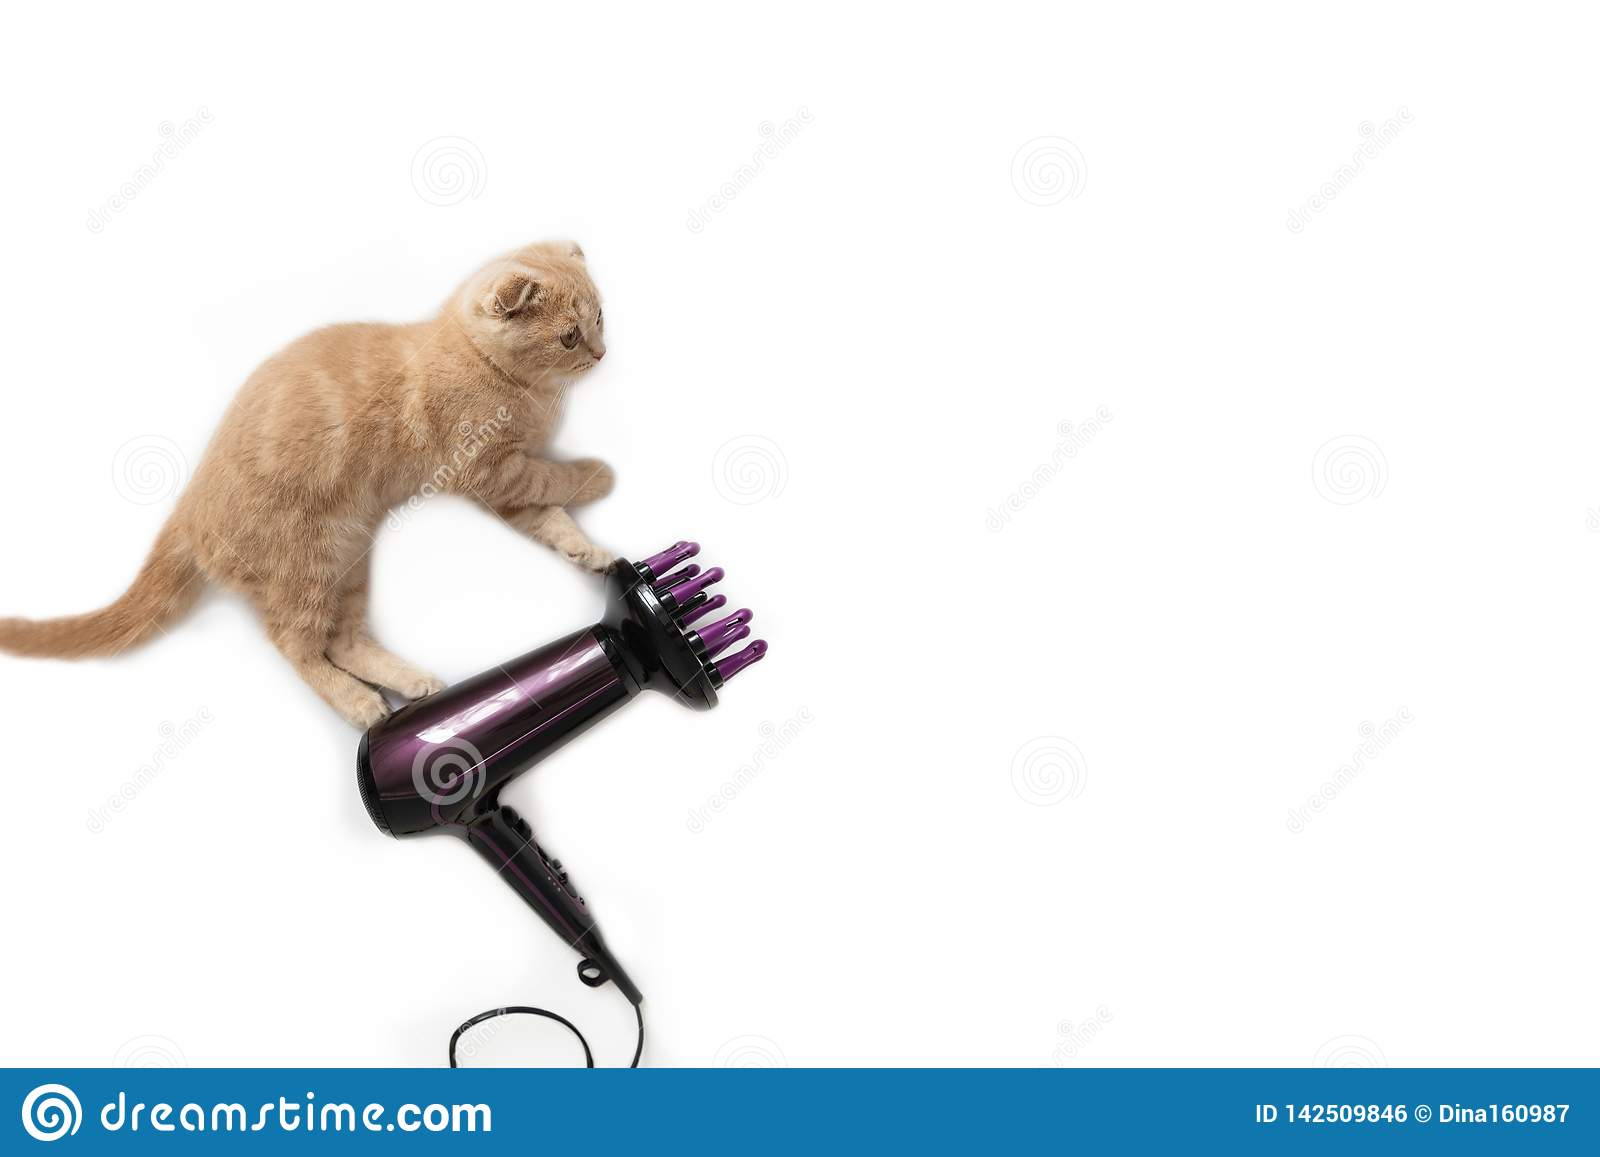 Funny cat flying on the hair dryer, isolated on white background. Copy space. Holiday card creative concept, banner, advertising